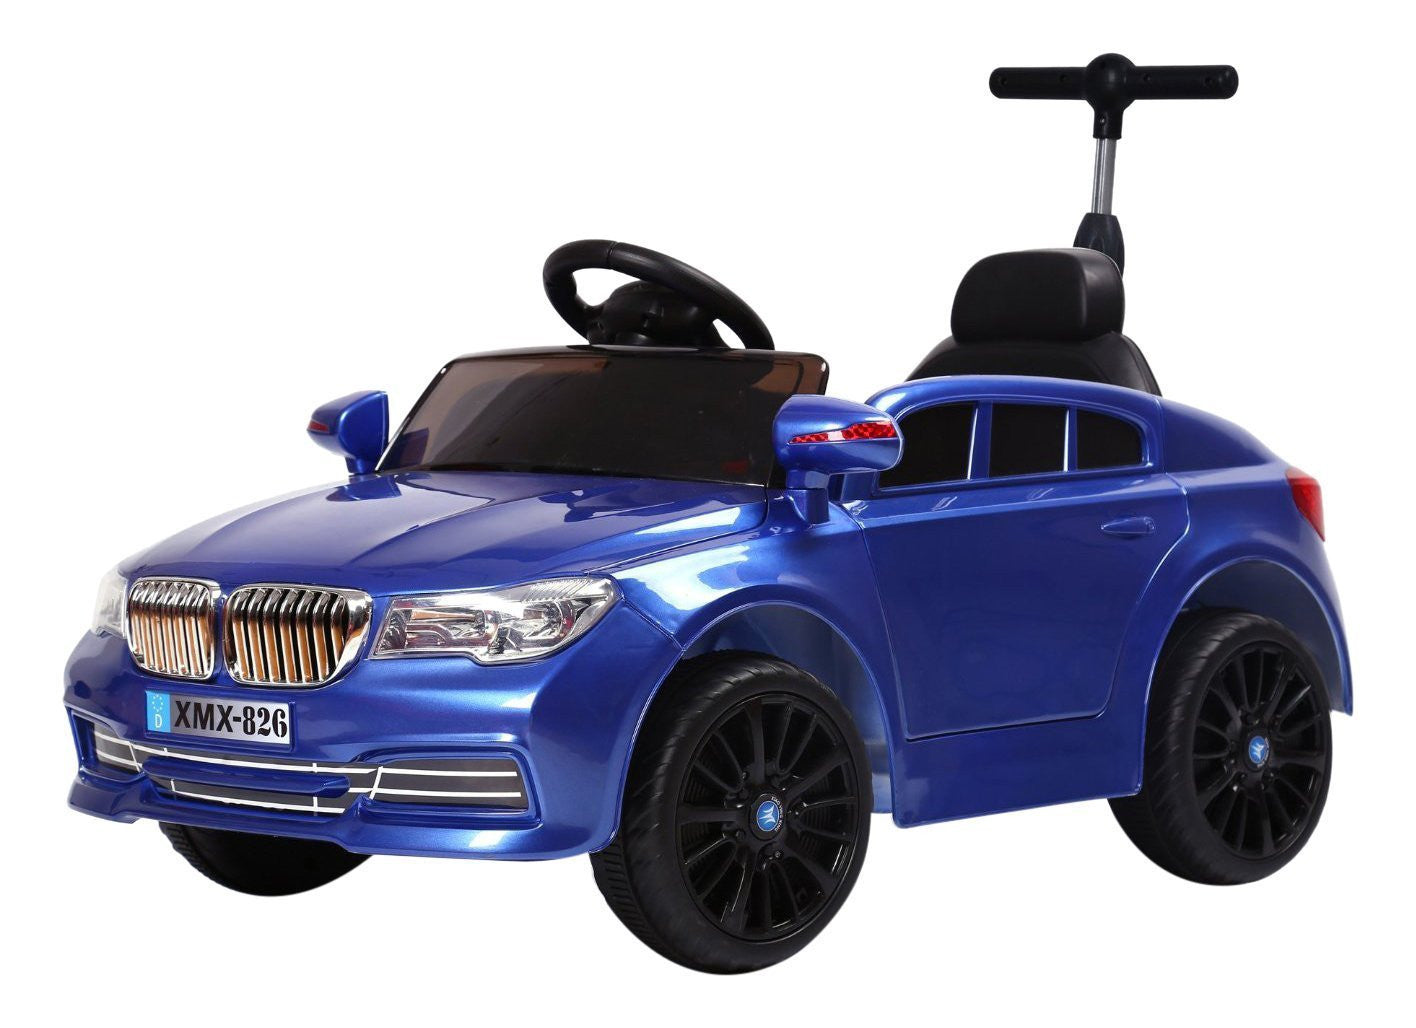 6V 50W Battery Powered BMW Style Twin Motor Electric Toy Car (Model: XMX826 ) BLUE - RICCO® Toys